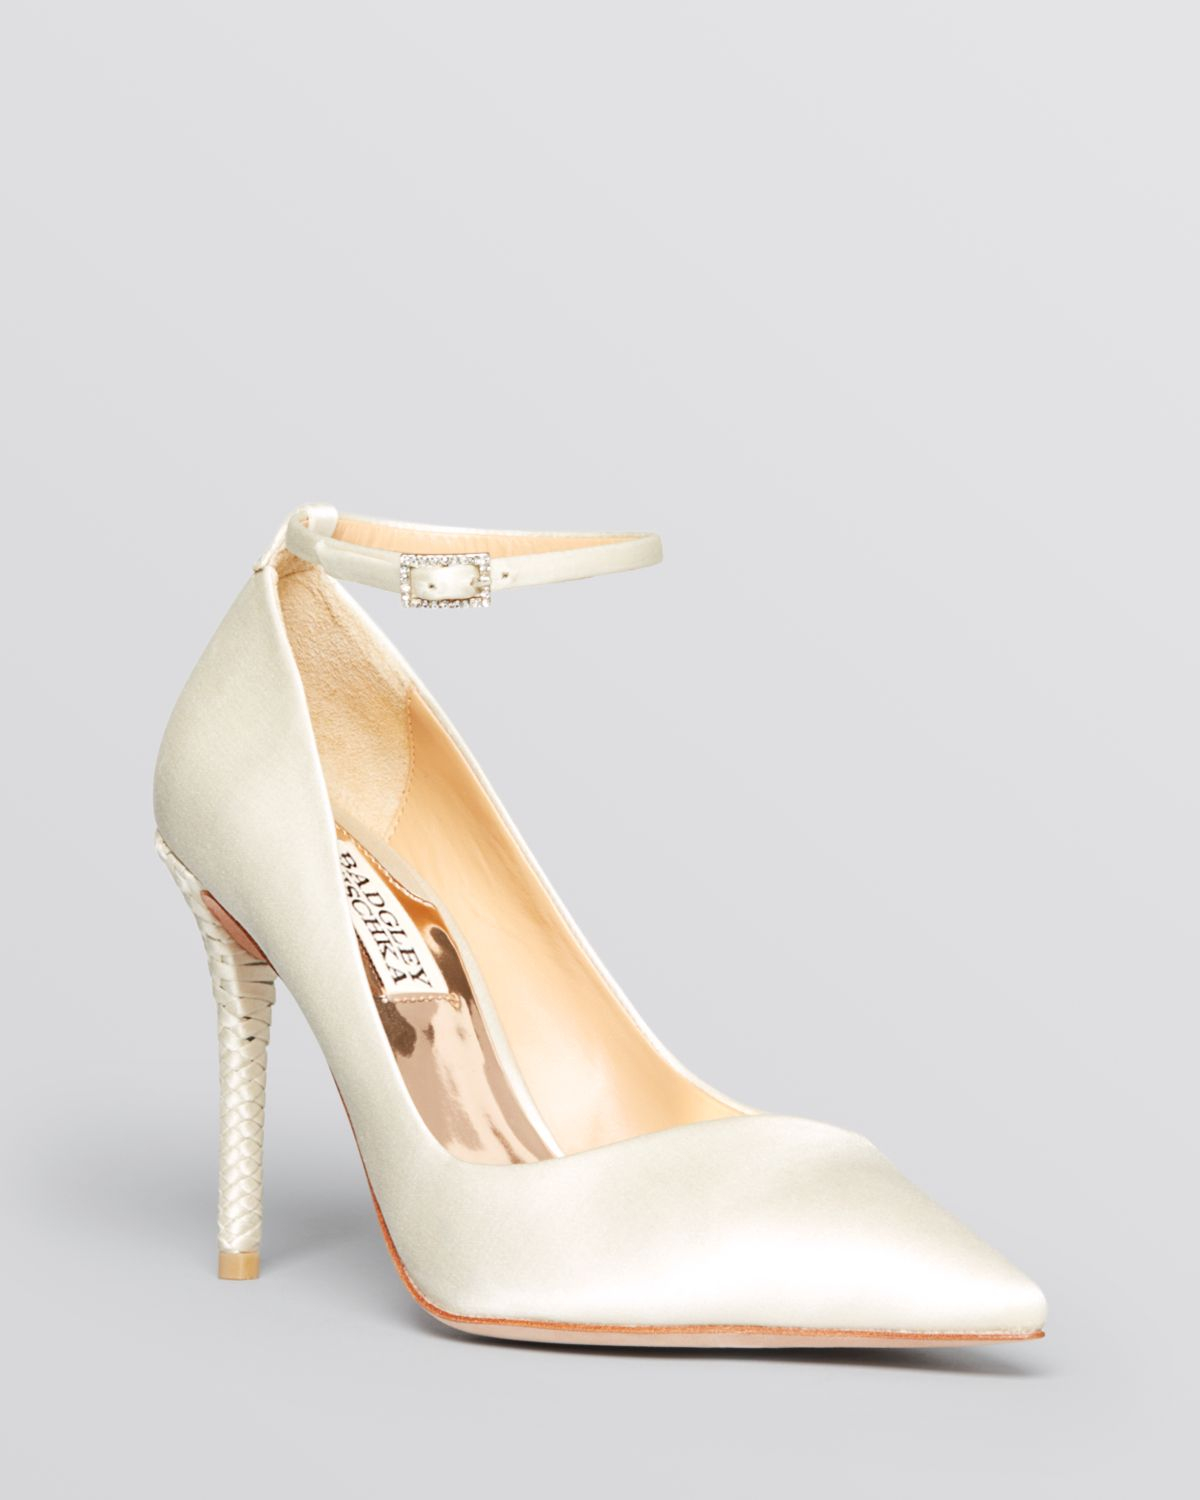 Badgley mischka Pointed Toe Evening Pumps - Livia High Heel in ...